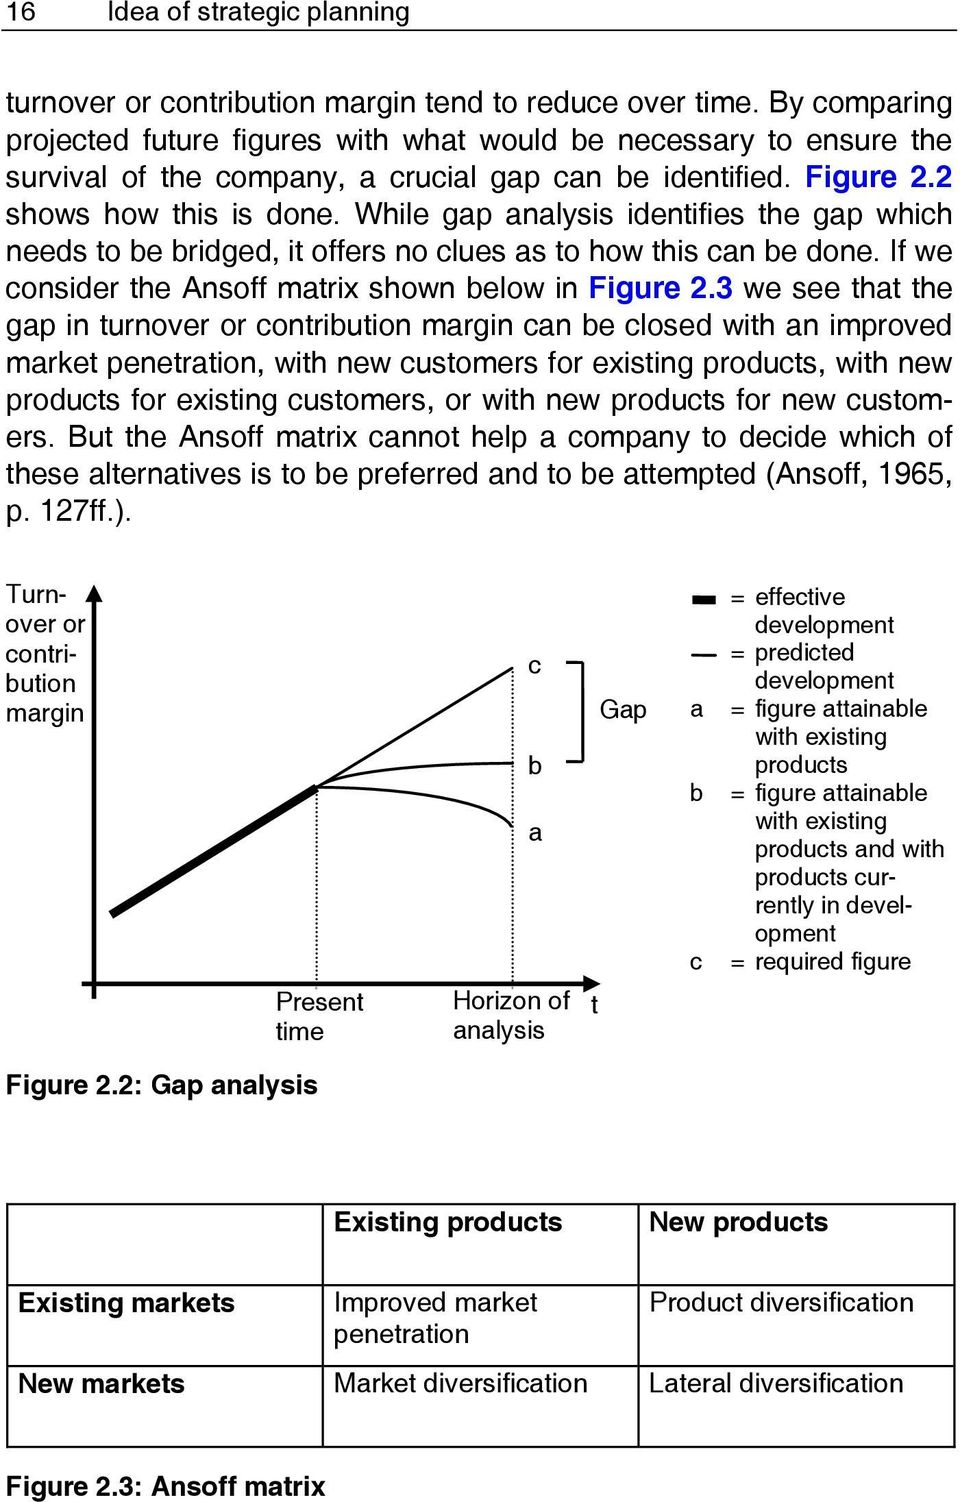 While gap analysis identifies the gap which needs to be bridged, it offers no clues as to how this can be done. If we consider the Ansoff matrix shown below in Figure 2.